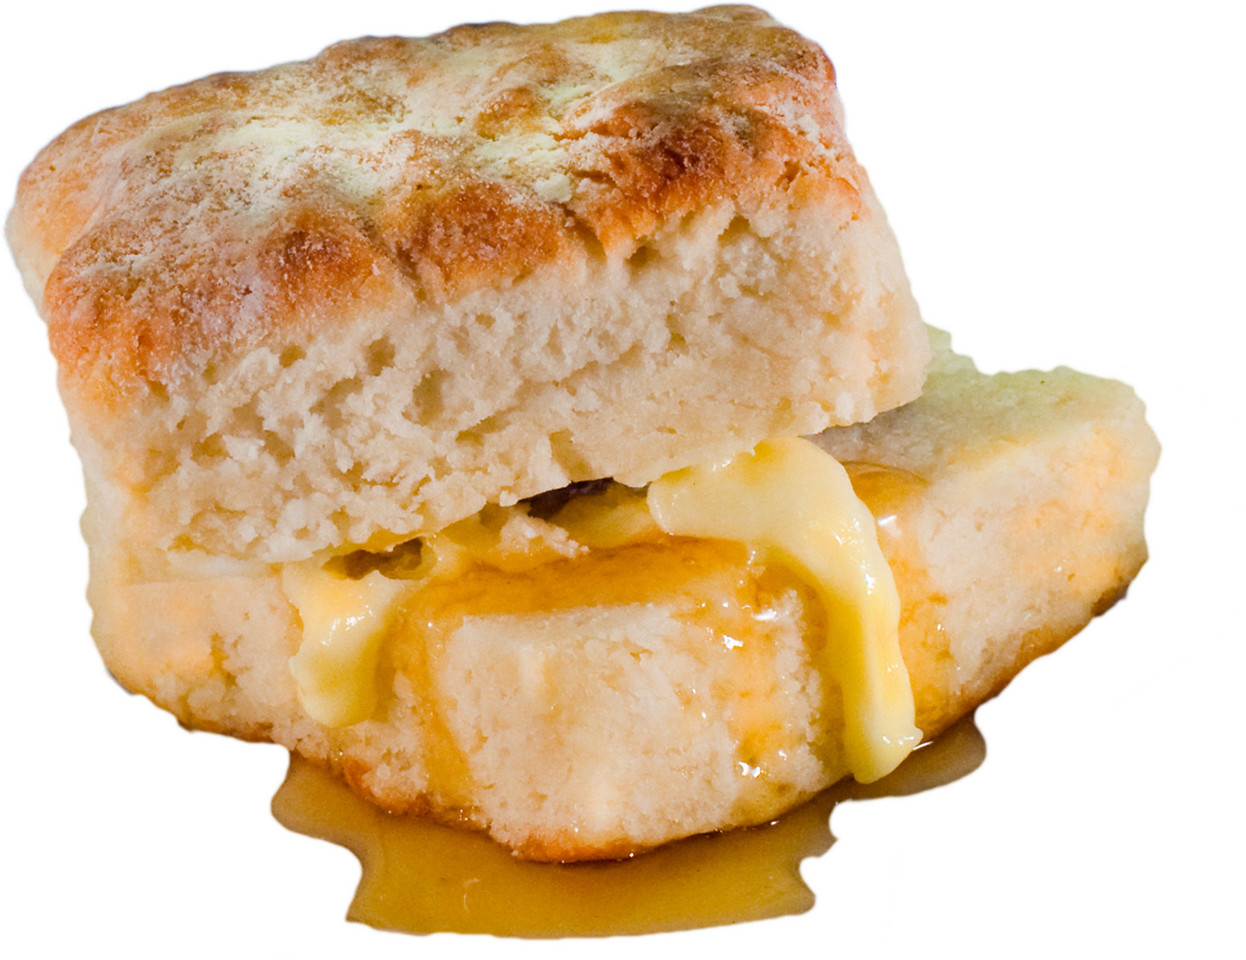 biscuit (plain) with butter and honey